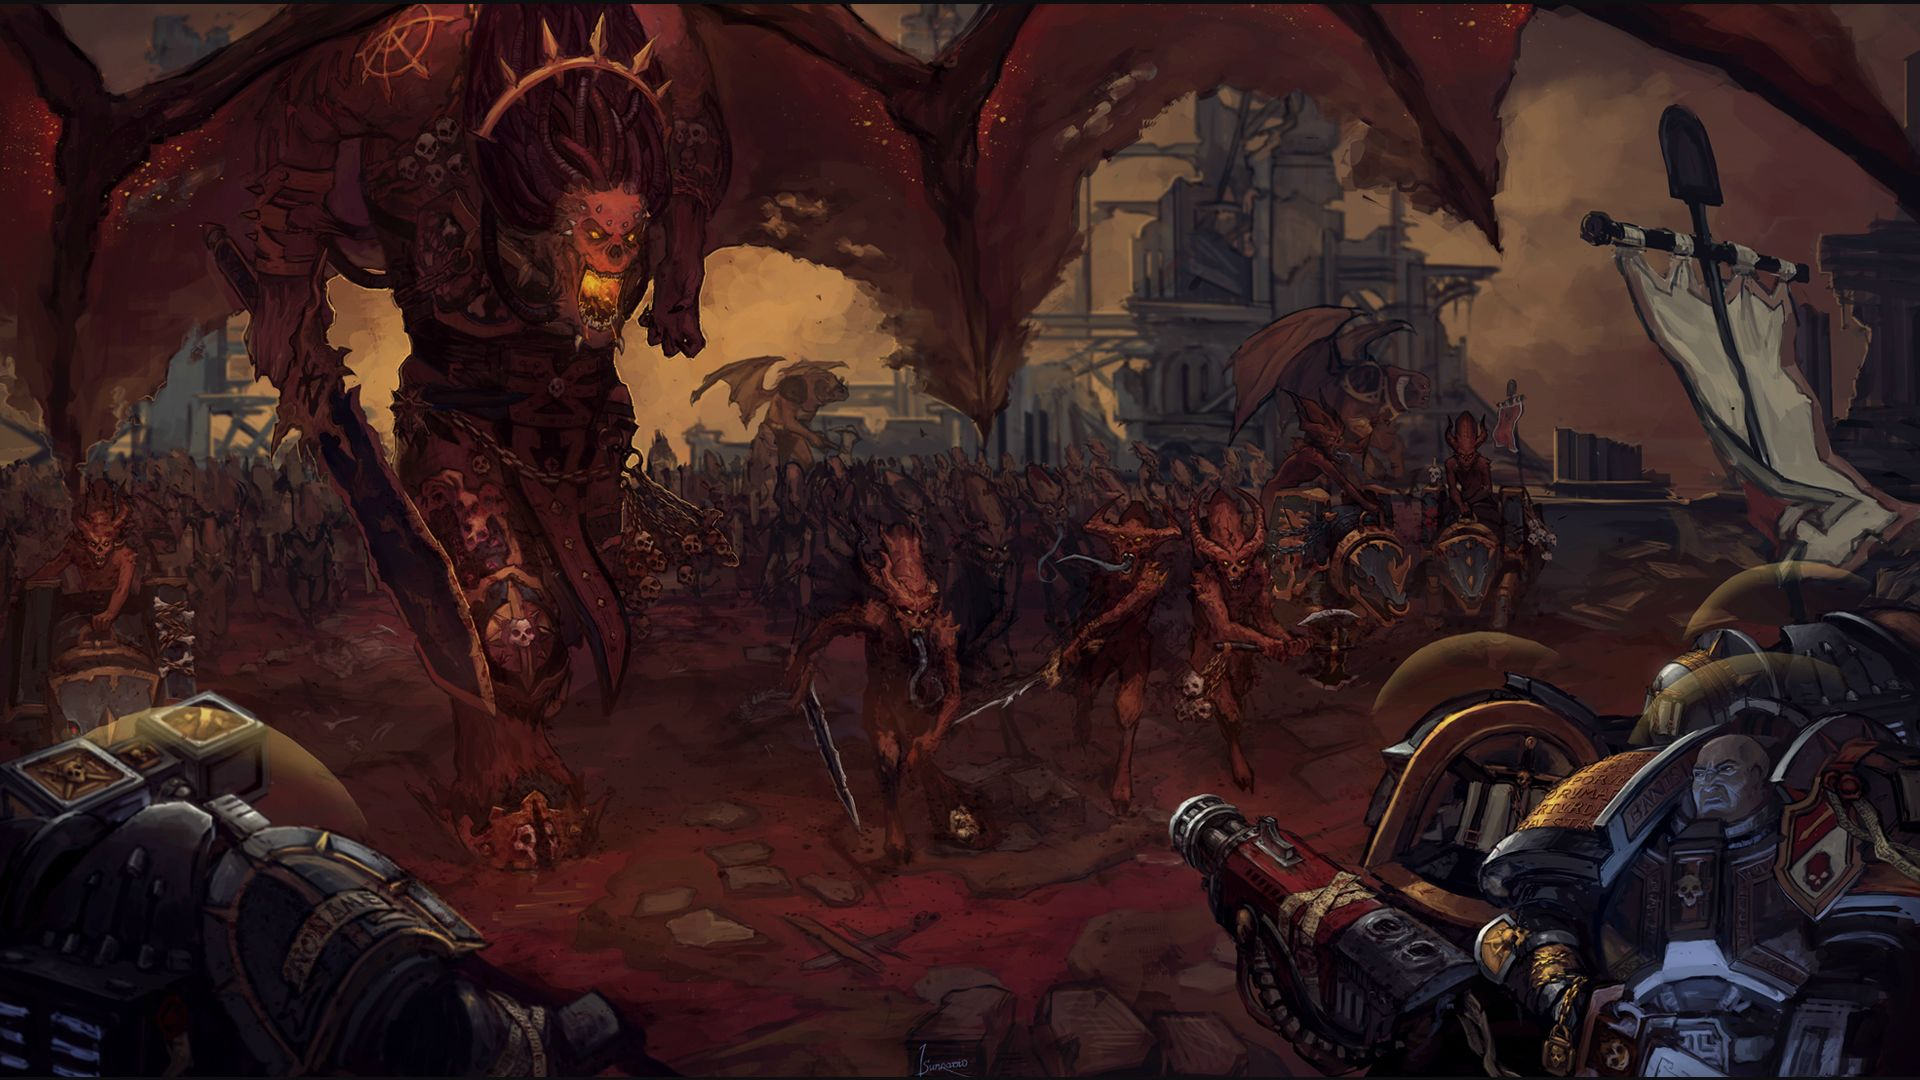 Warhammer 40k Wallpaper Imperial Guard Posted By Ethan Walker